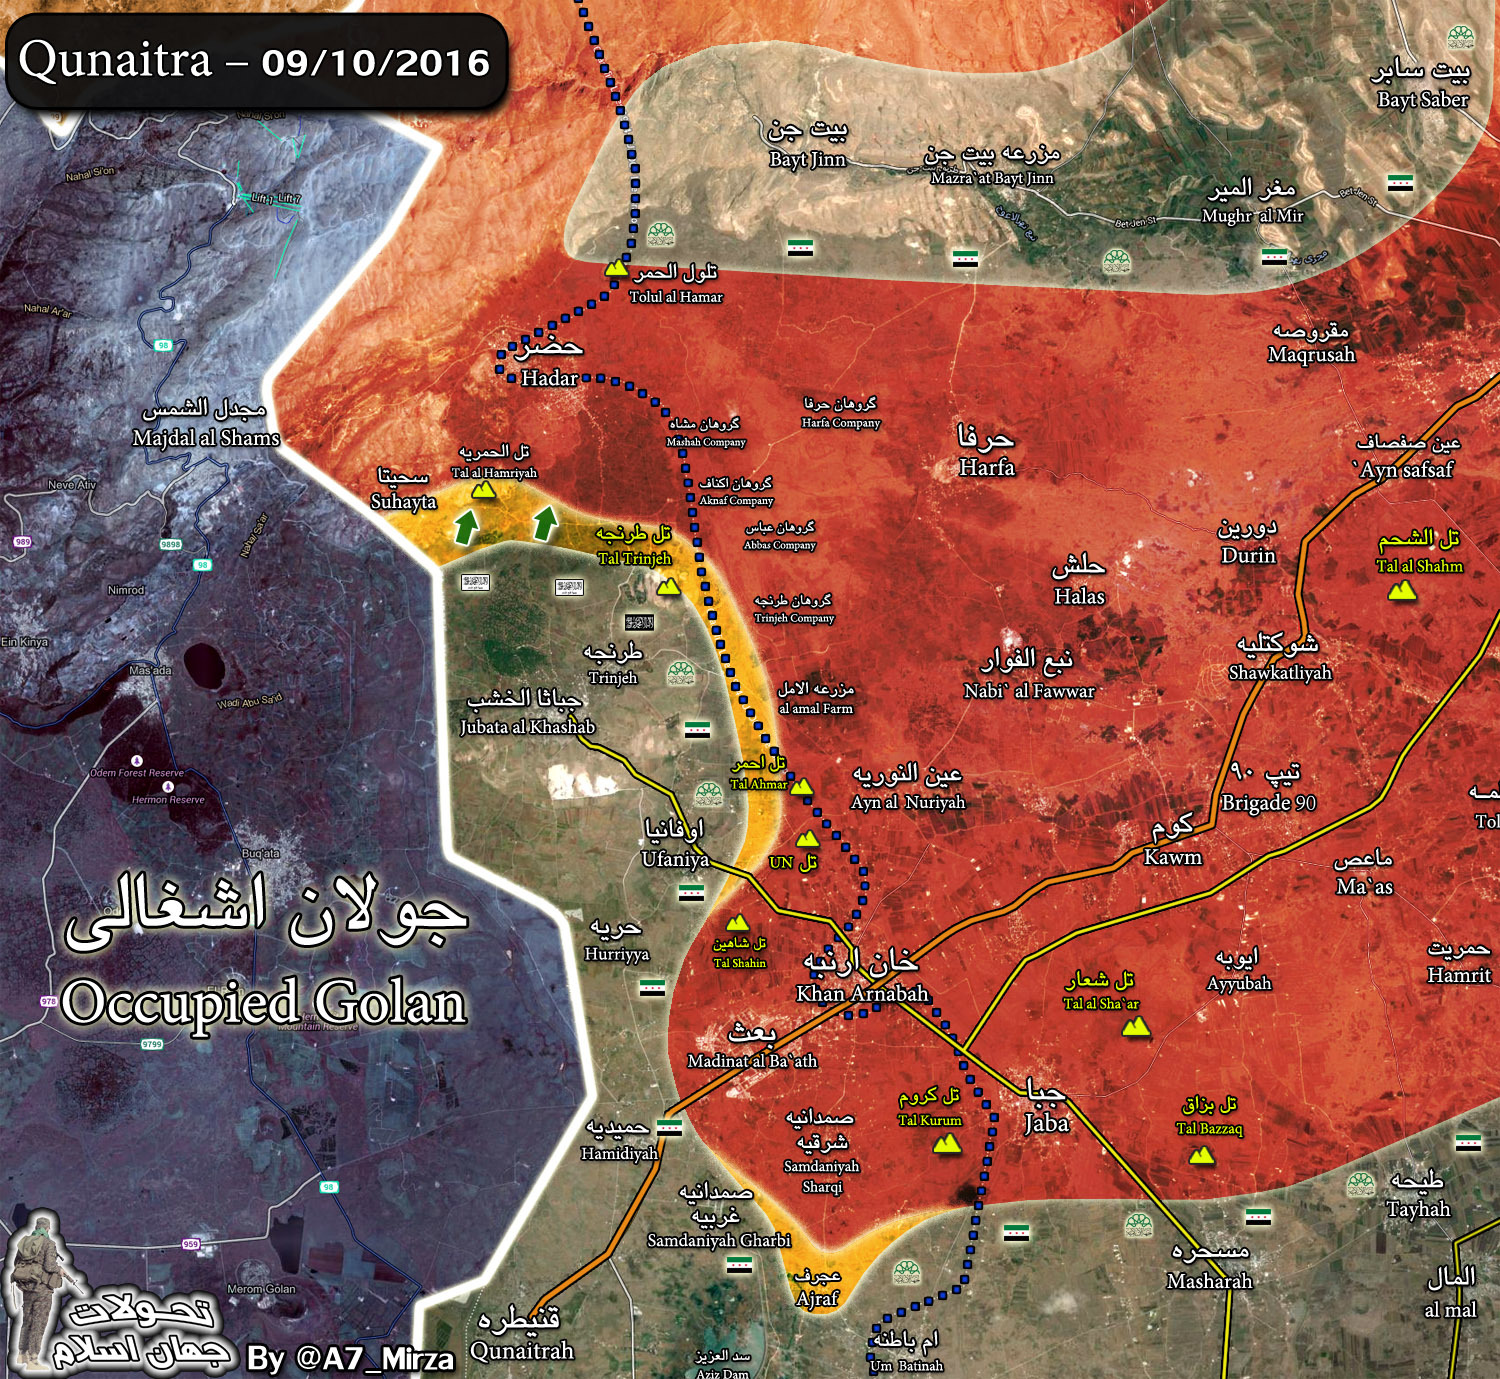 Following Israeli Air Strikes on Syrian Army, Terrorists Launched Full-Scale Advance in Quneitra Countryside